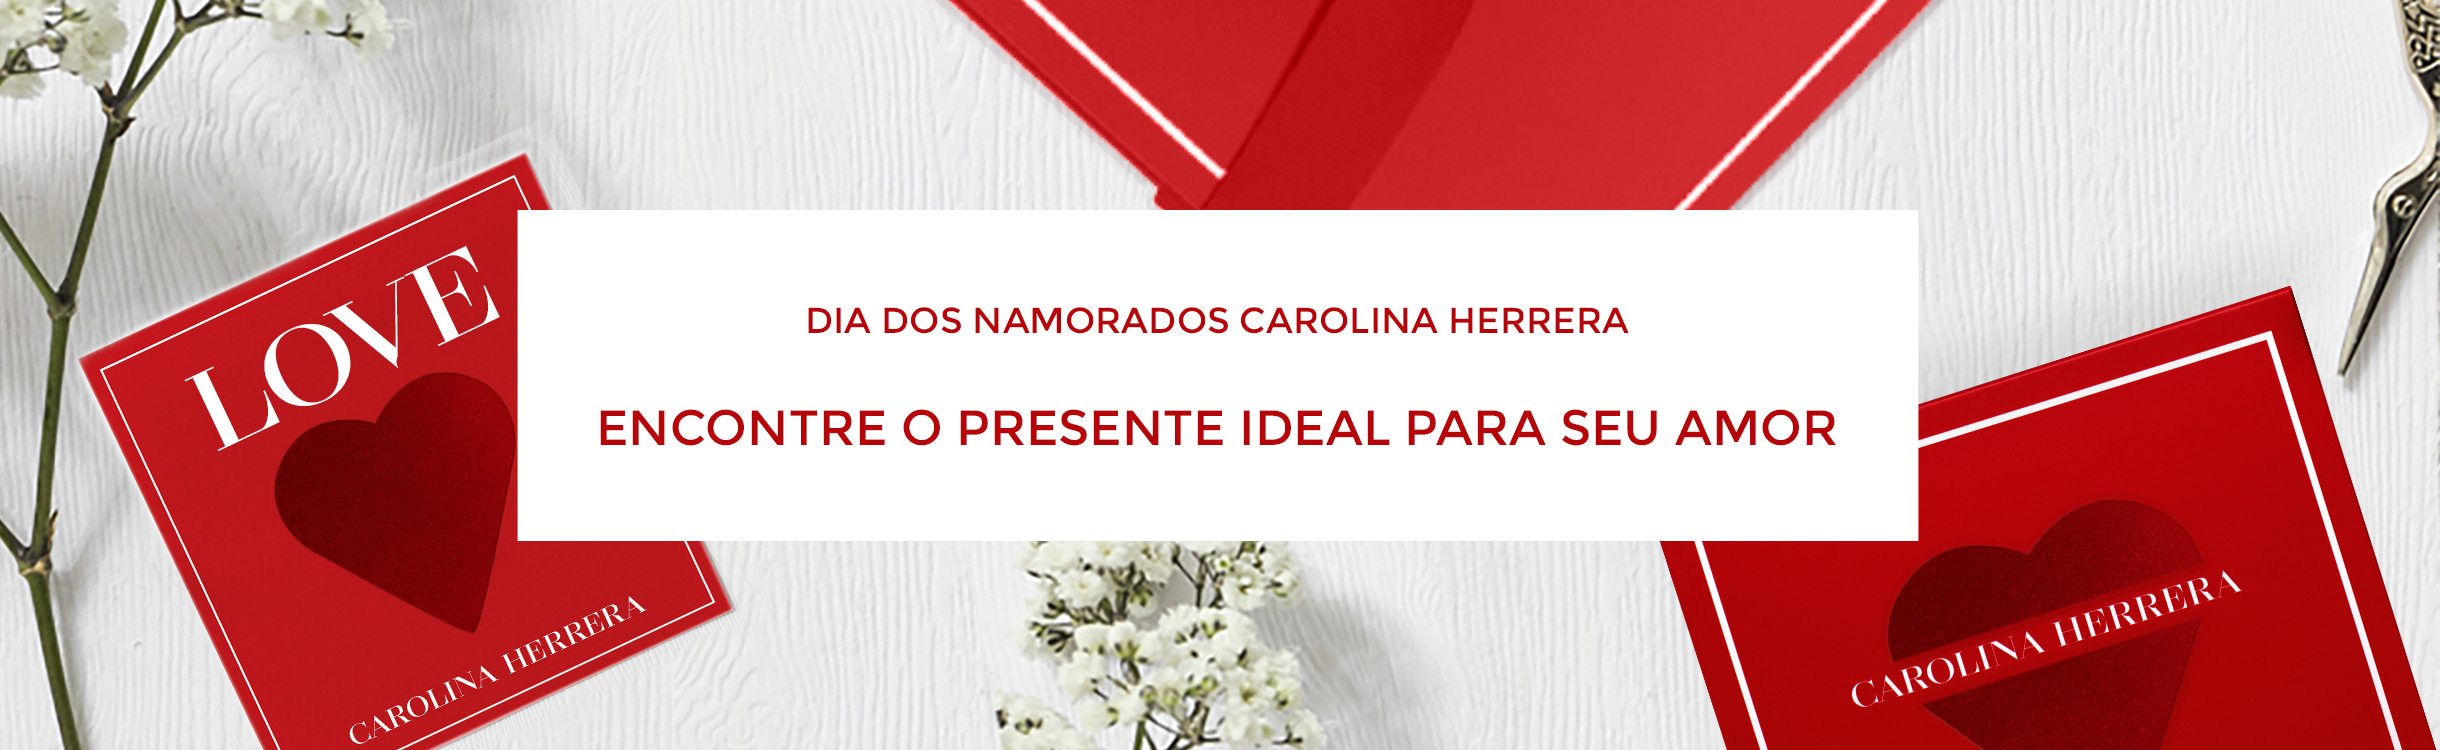 Presenteie com Carolina Herrera